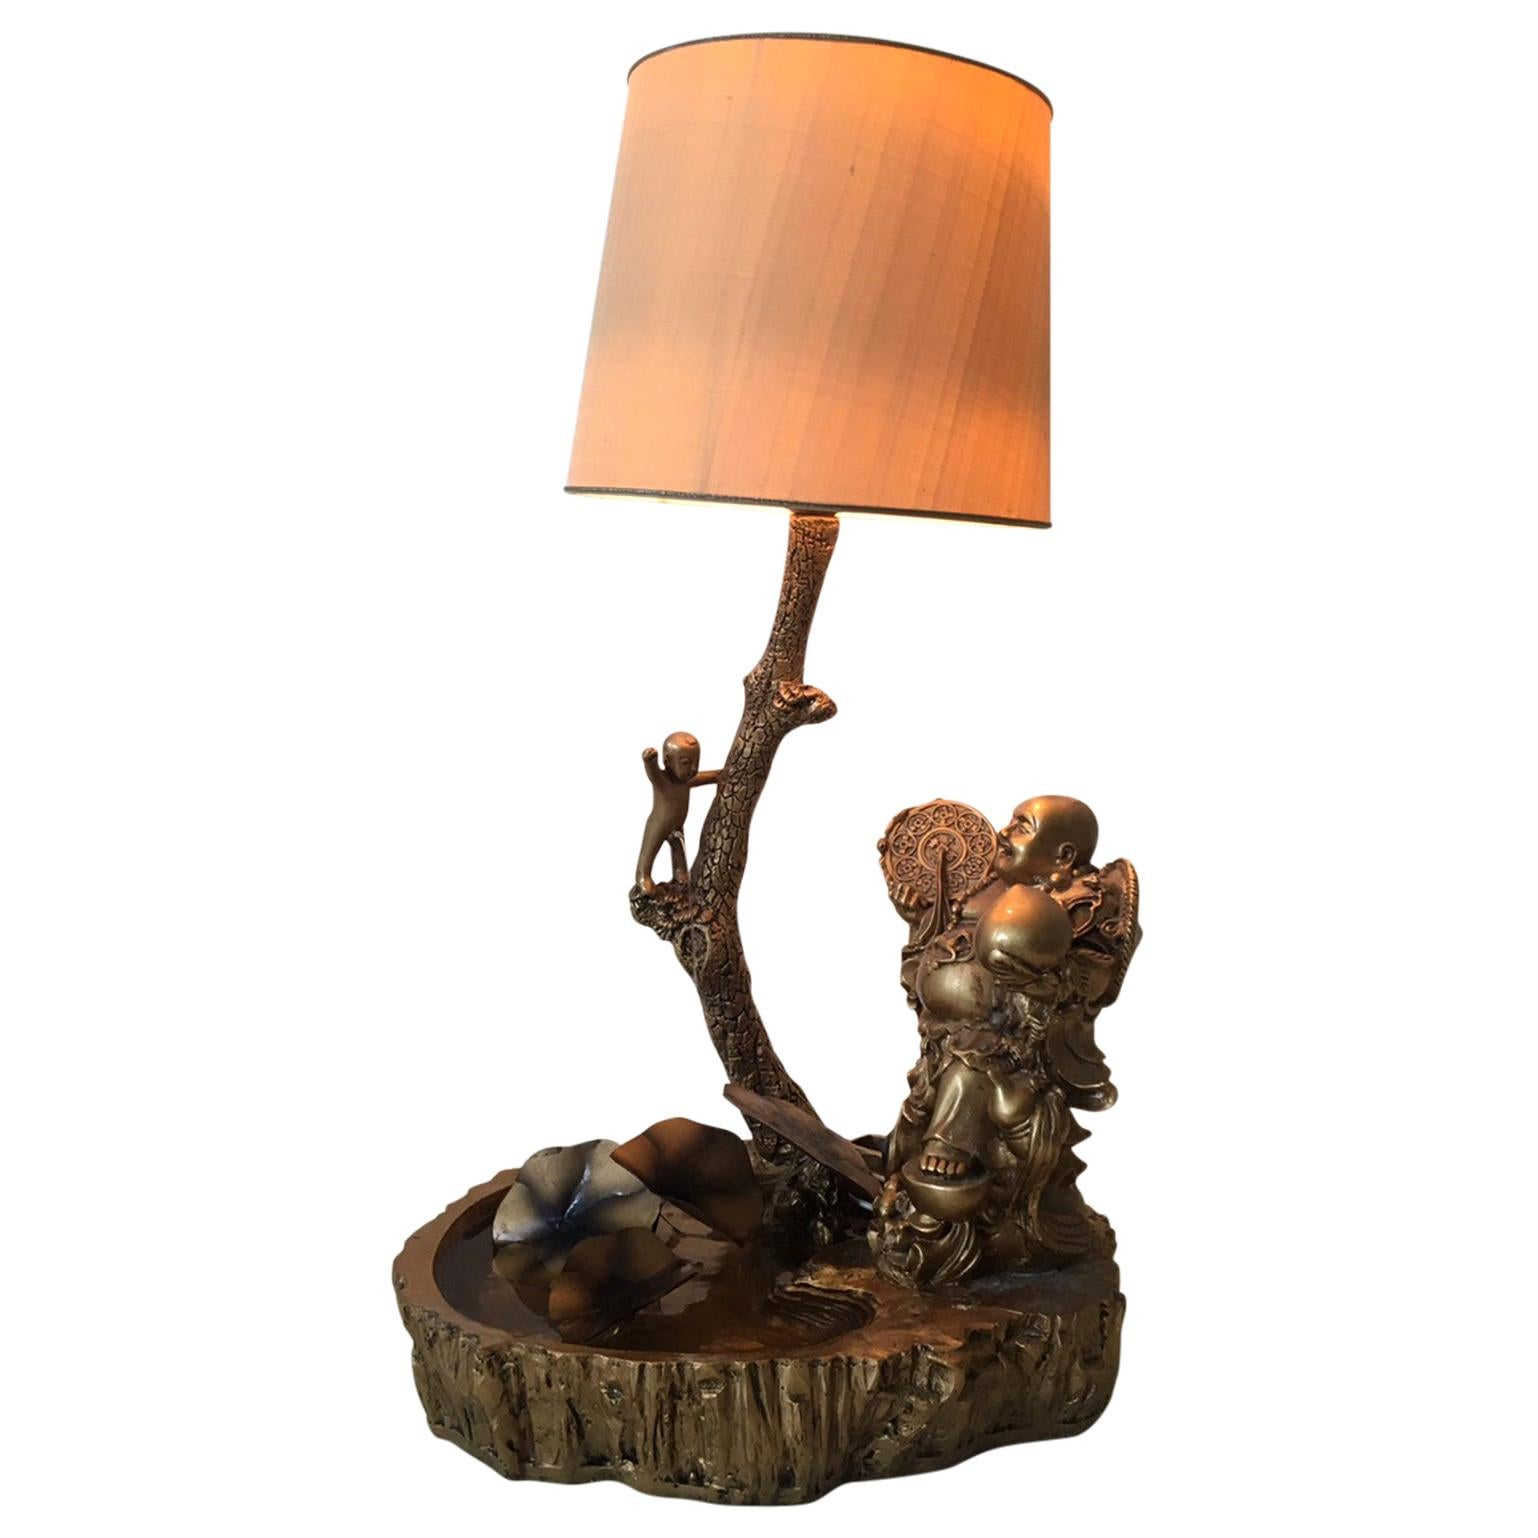 Chinese Table Fountain, Table Lamp, 1960s